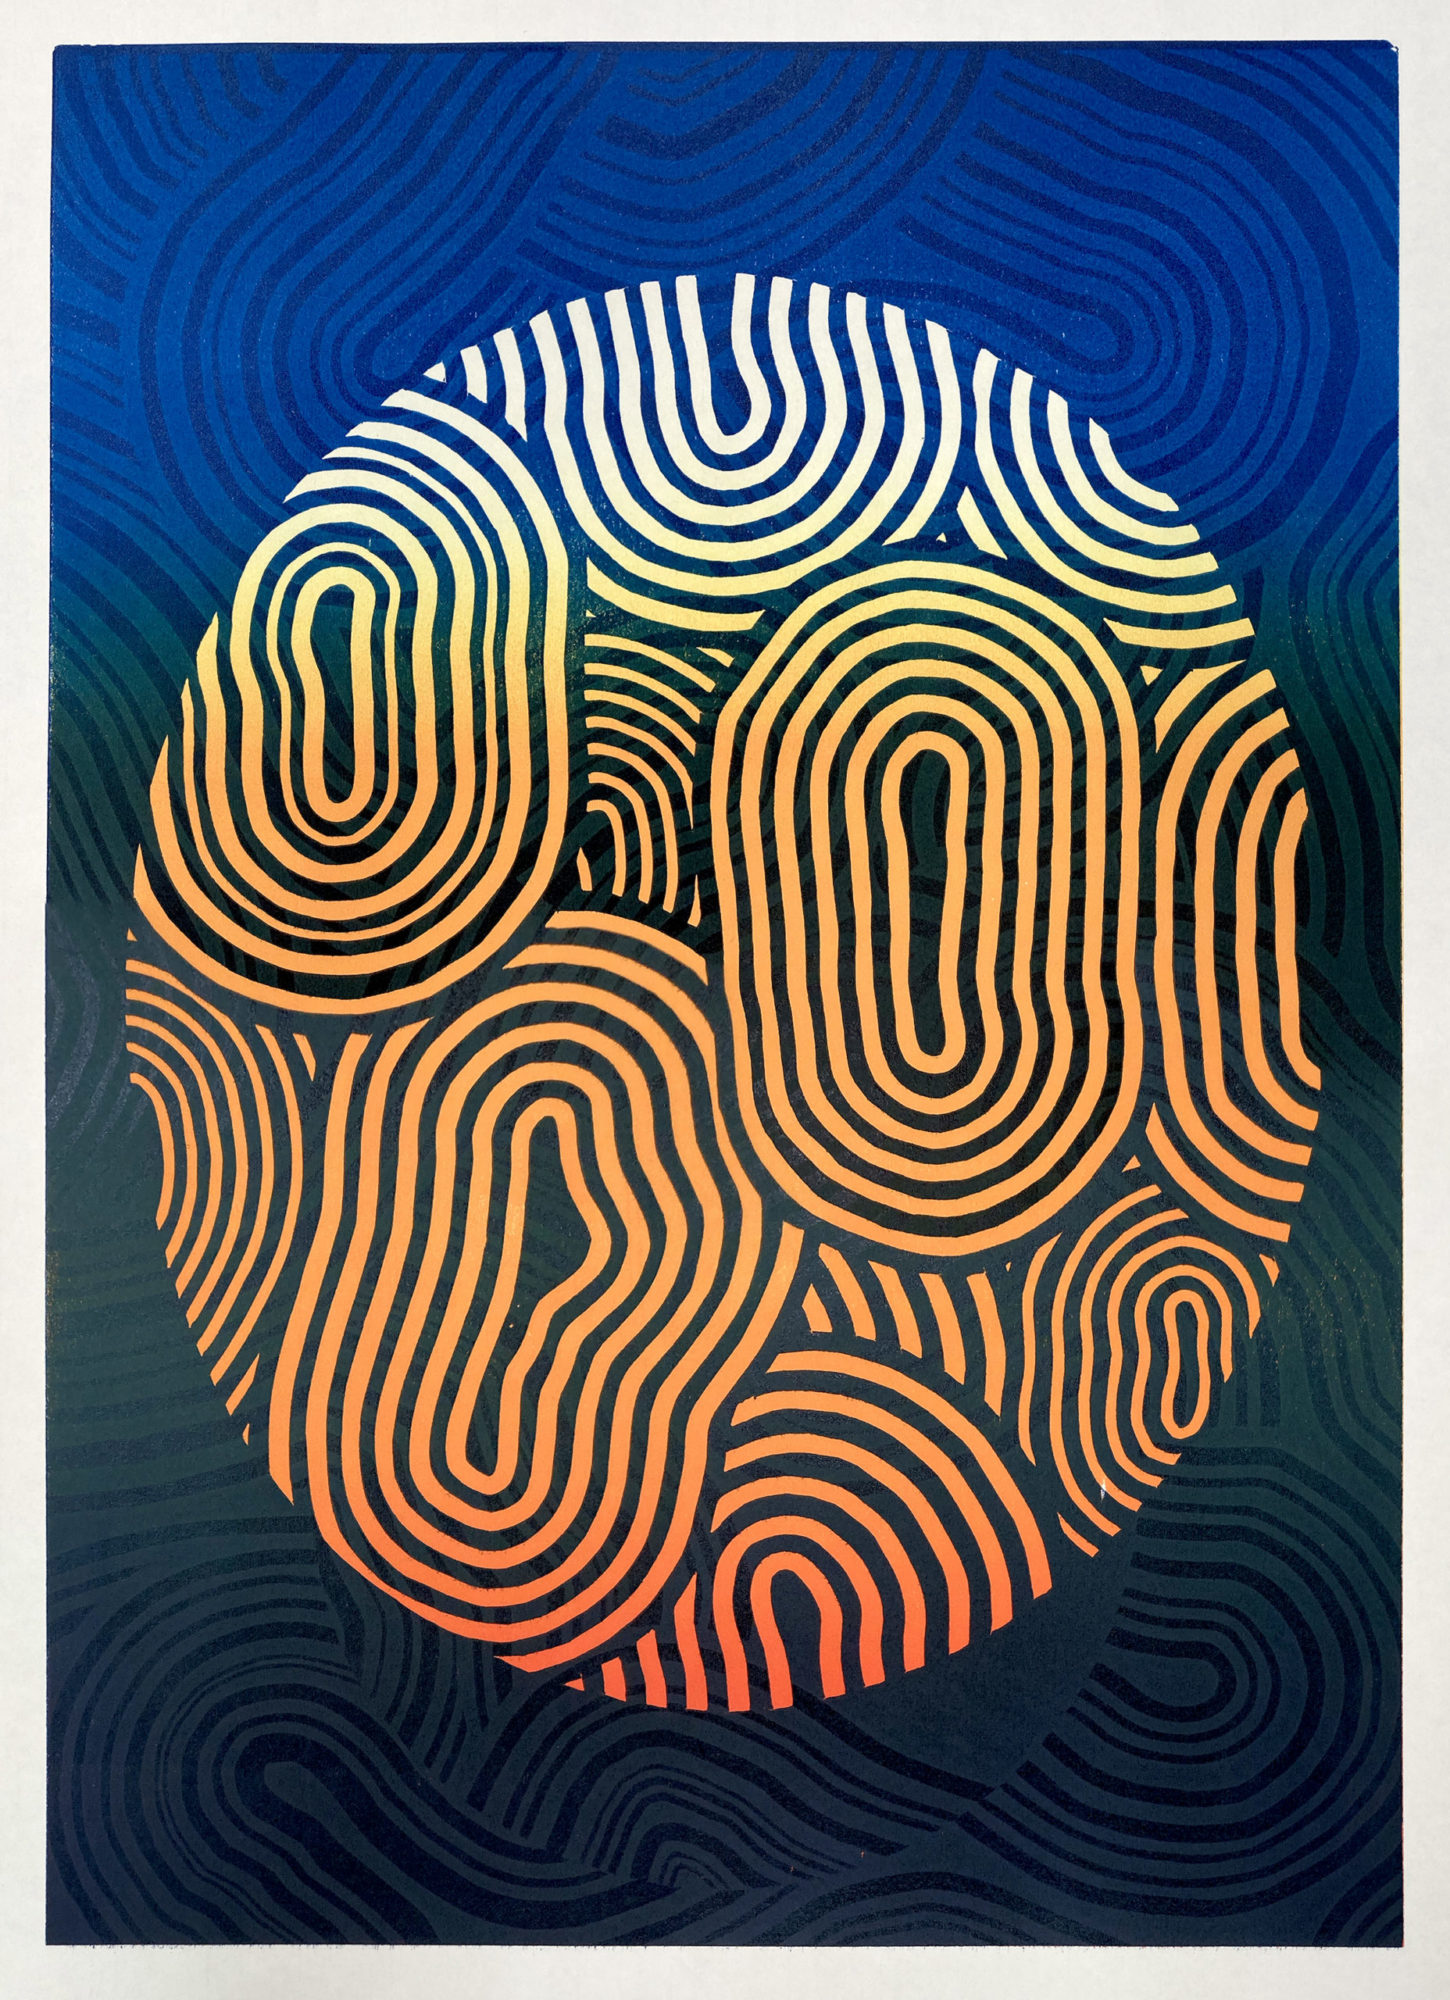 Untitled (relief print)